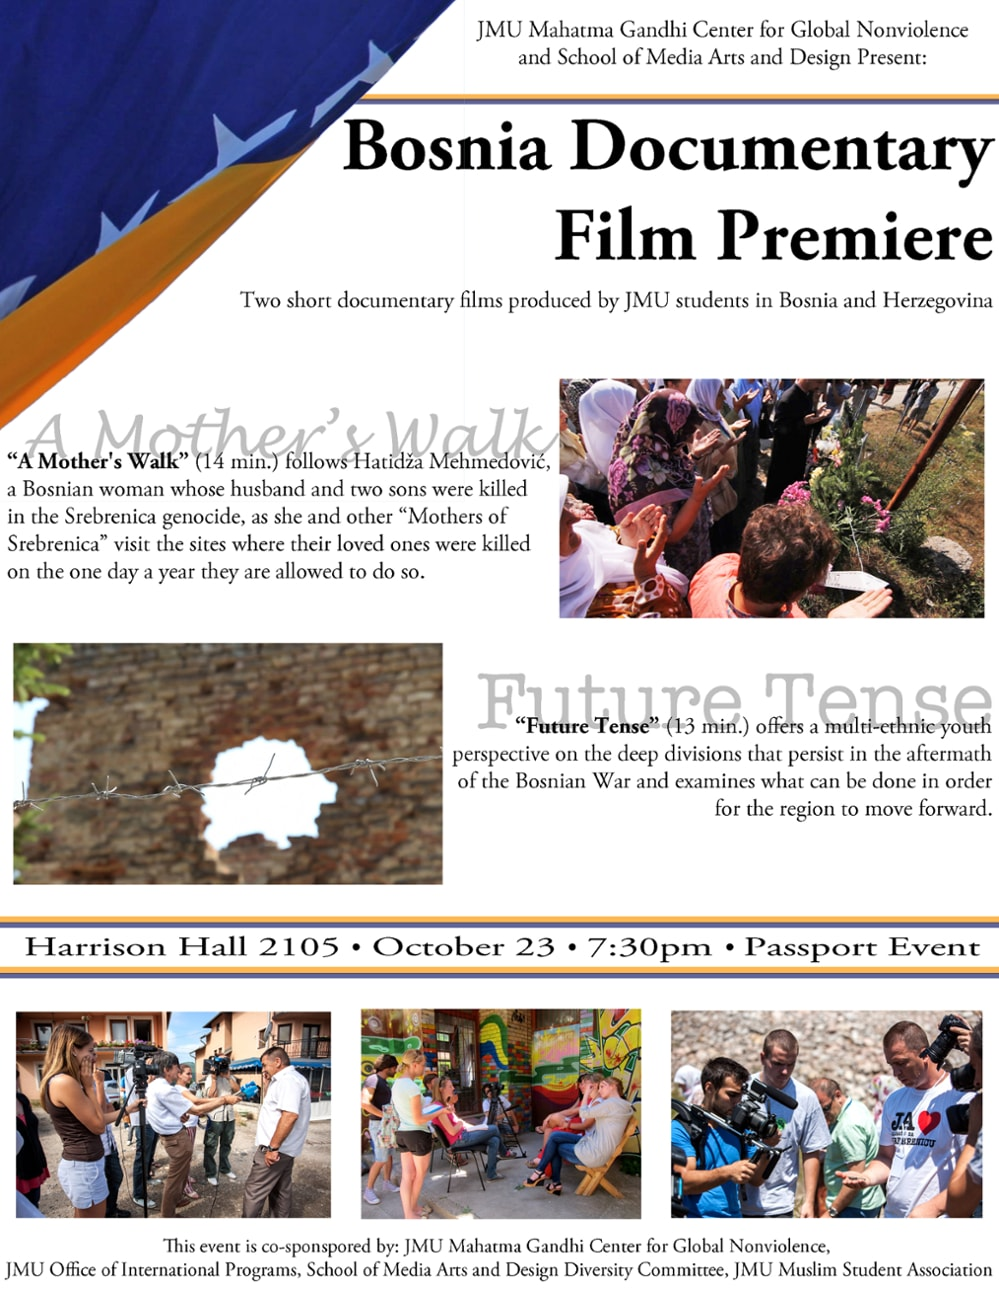 Bosnia Documentary Film Premiere